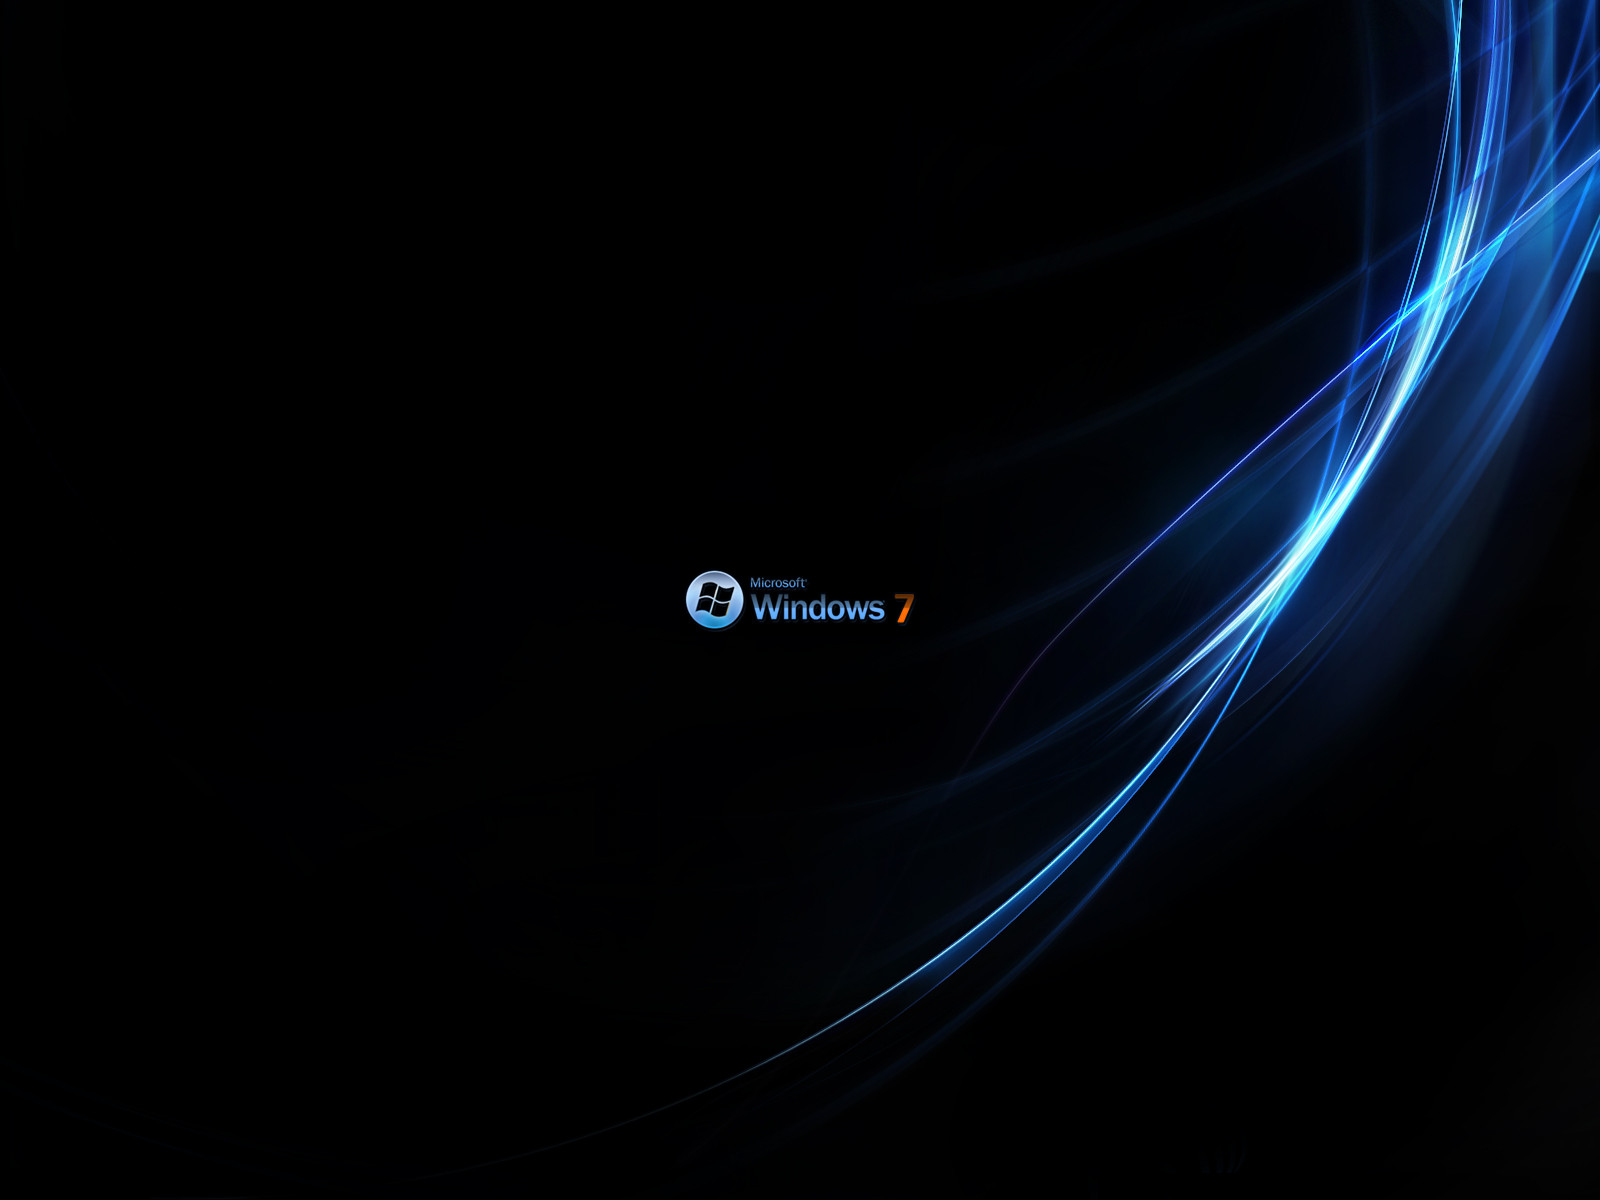 animated wallpapers photos Windows 7 Animated Wallpaper 1600x1200